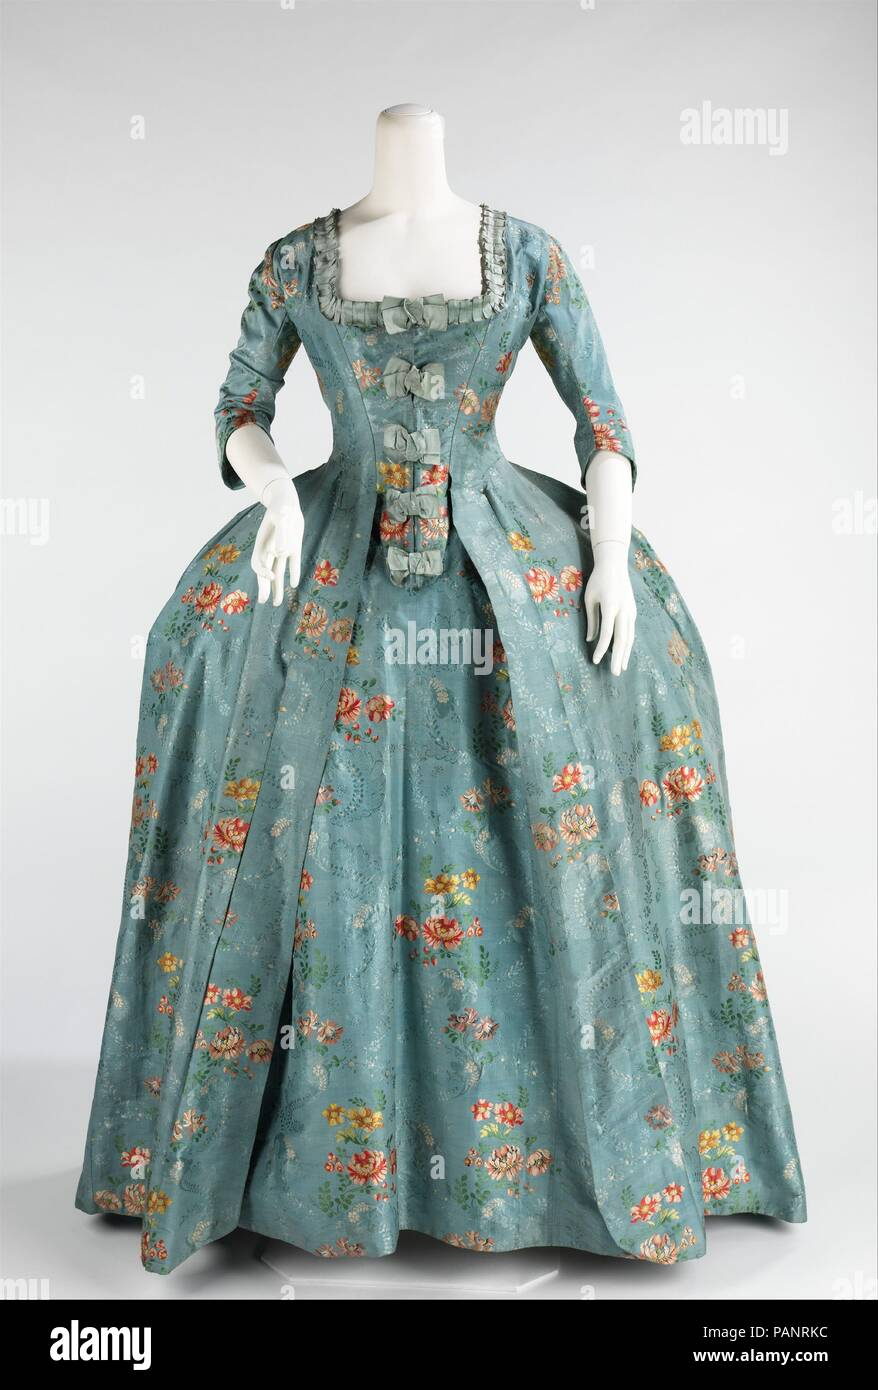 bce3ec6e034 Robe à la Française. Culture  French. Date  1760-70. Women